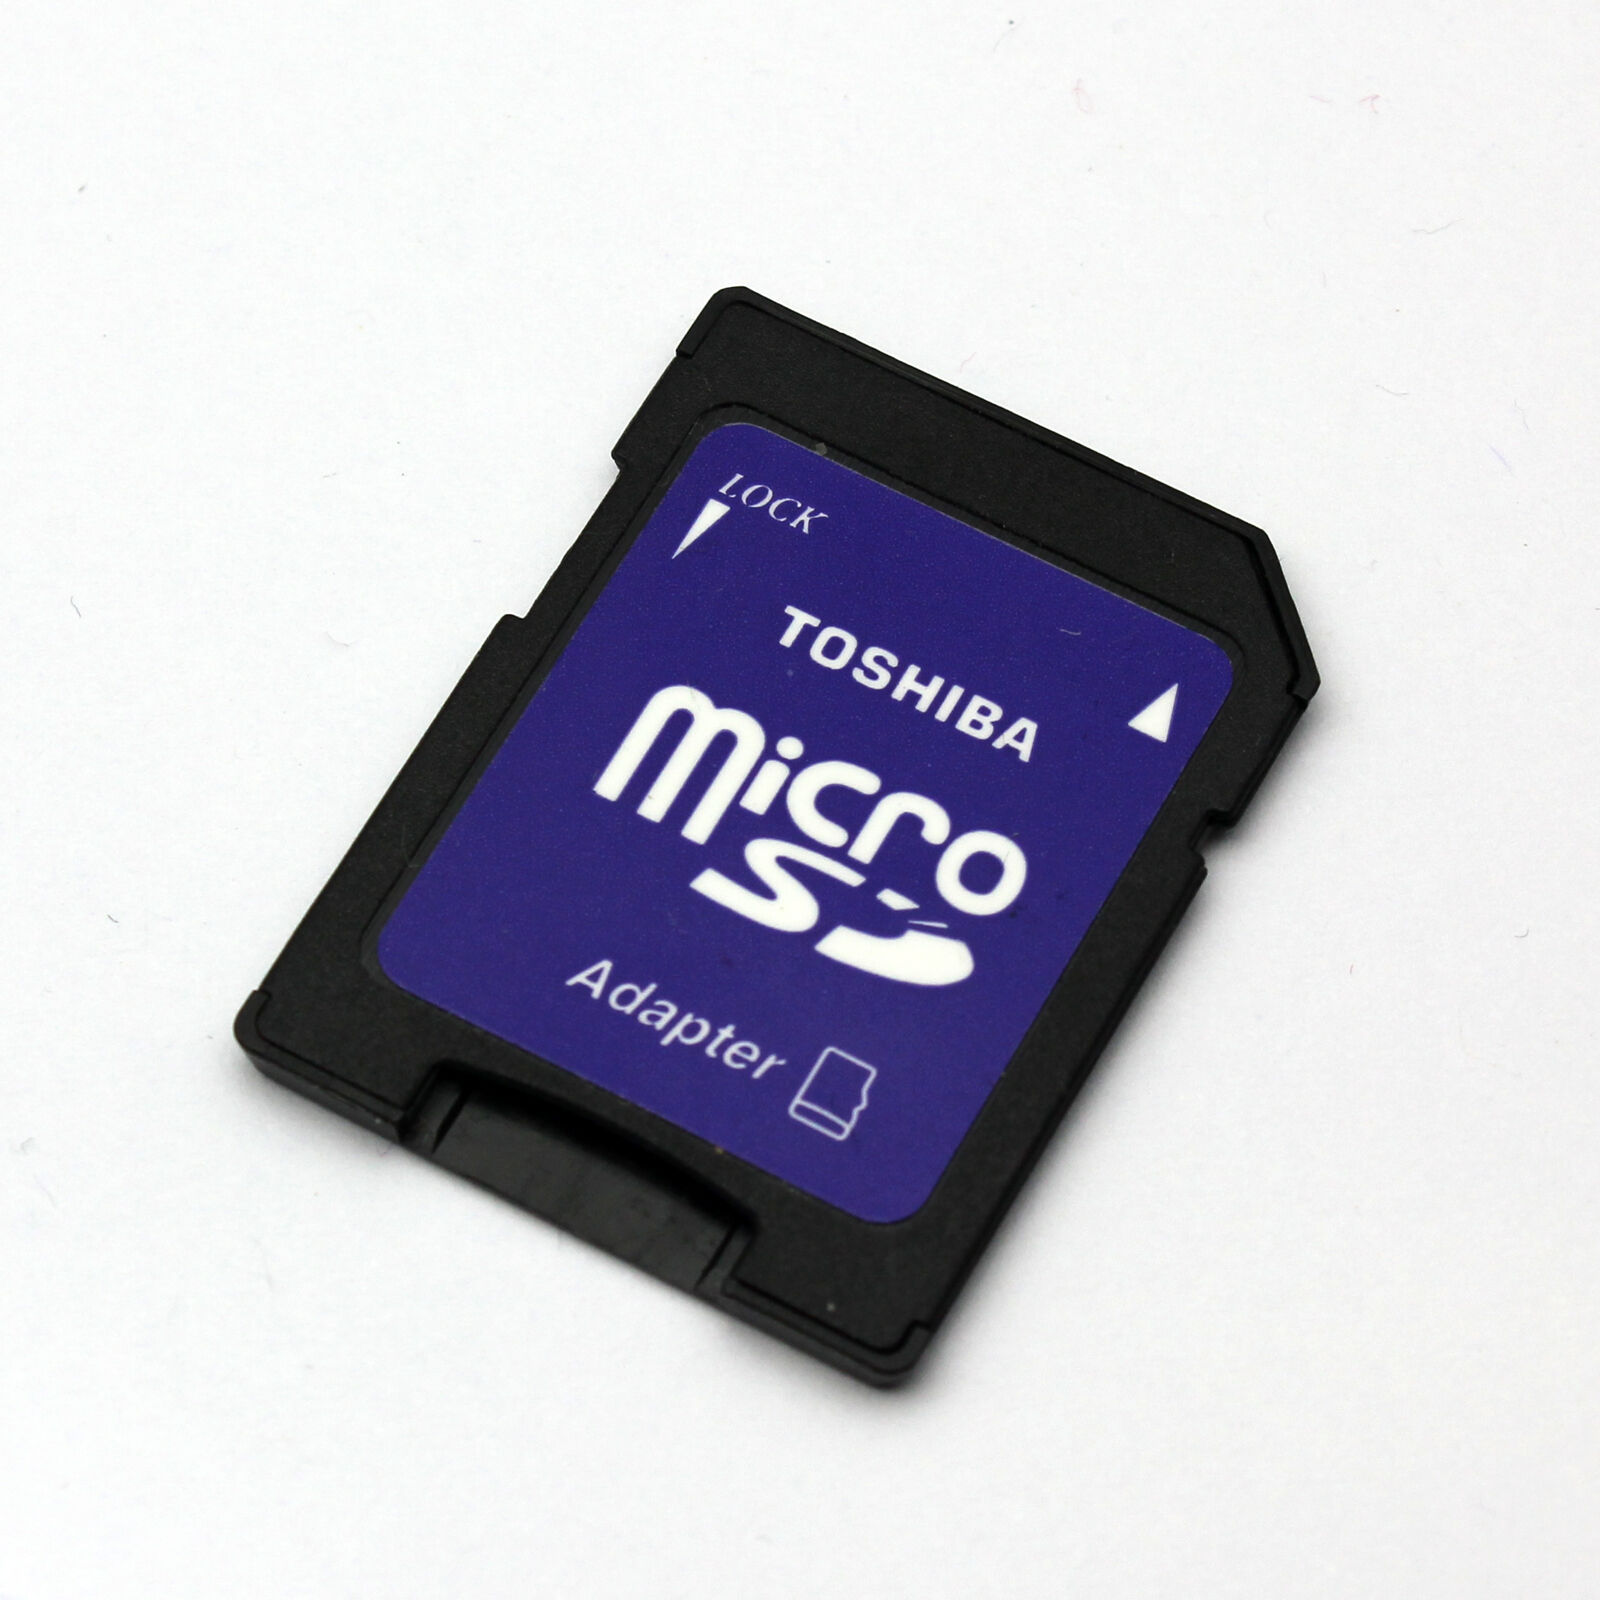 Details about 10 pcs of TOSHIBA MicroSDXC TF to SD Card Adapters  Converter,MicroSDHC Adapters